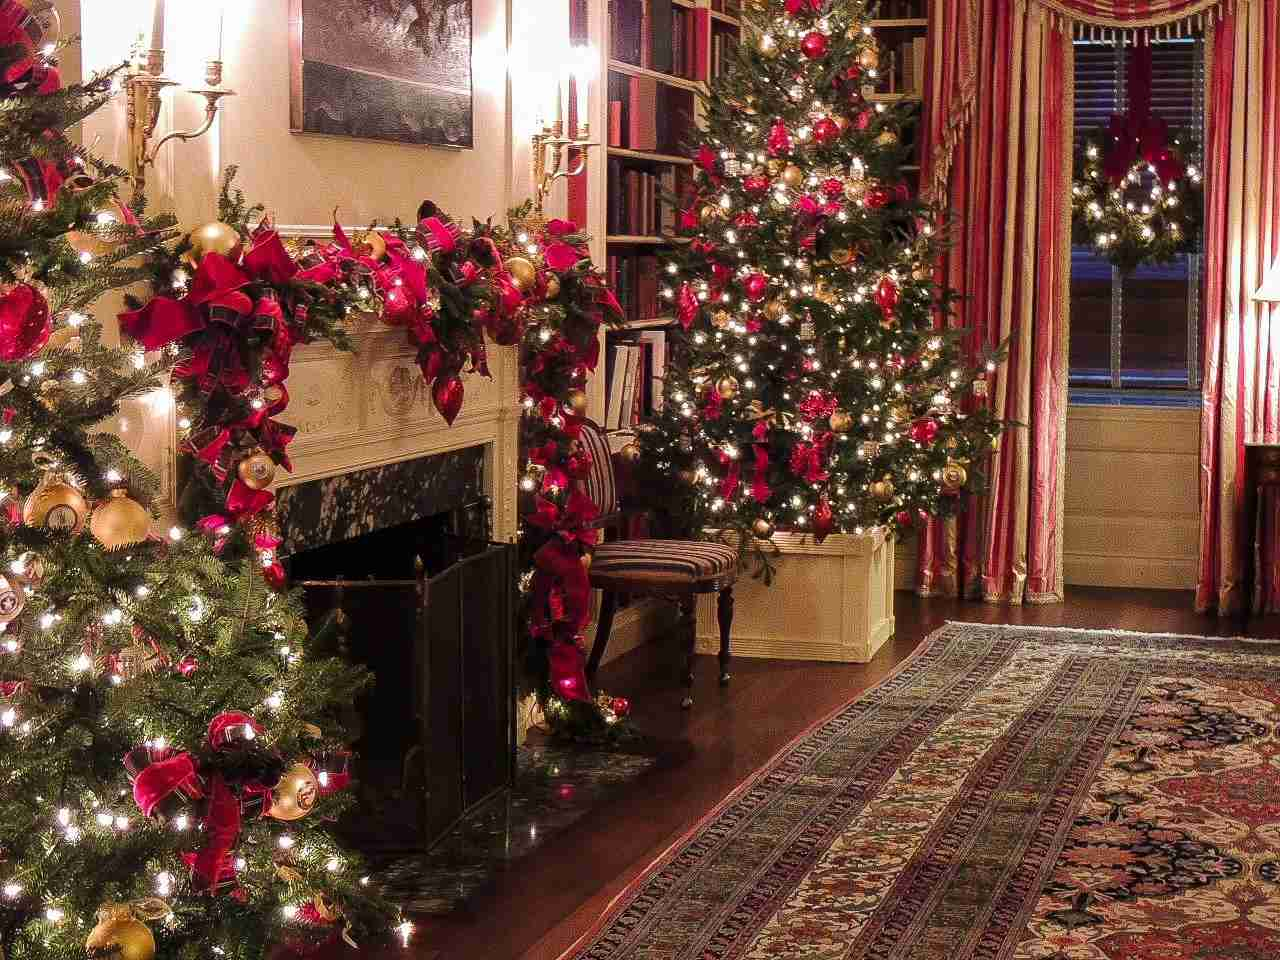 The White House Library at Christmas